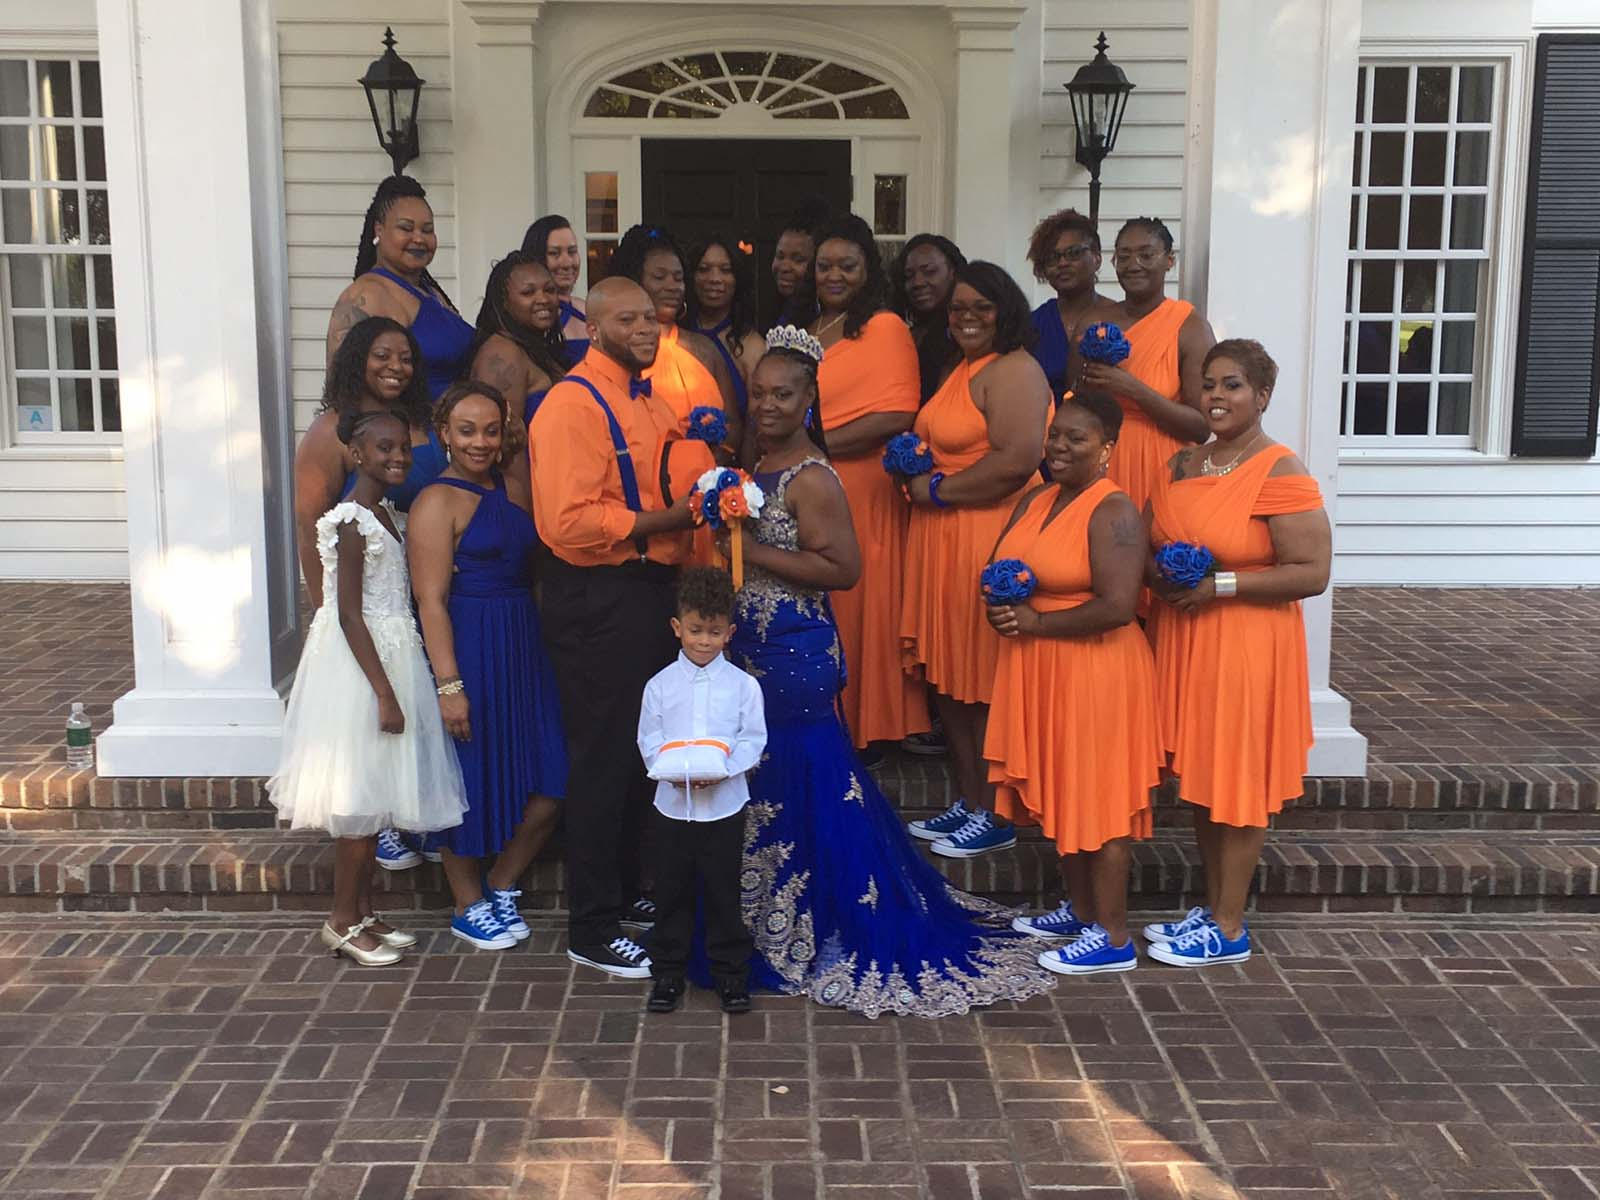 Wedding party in orange and blue colors